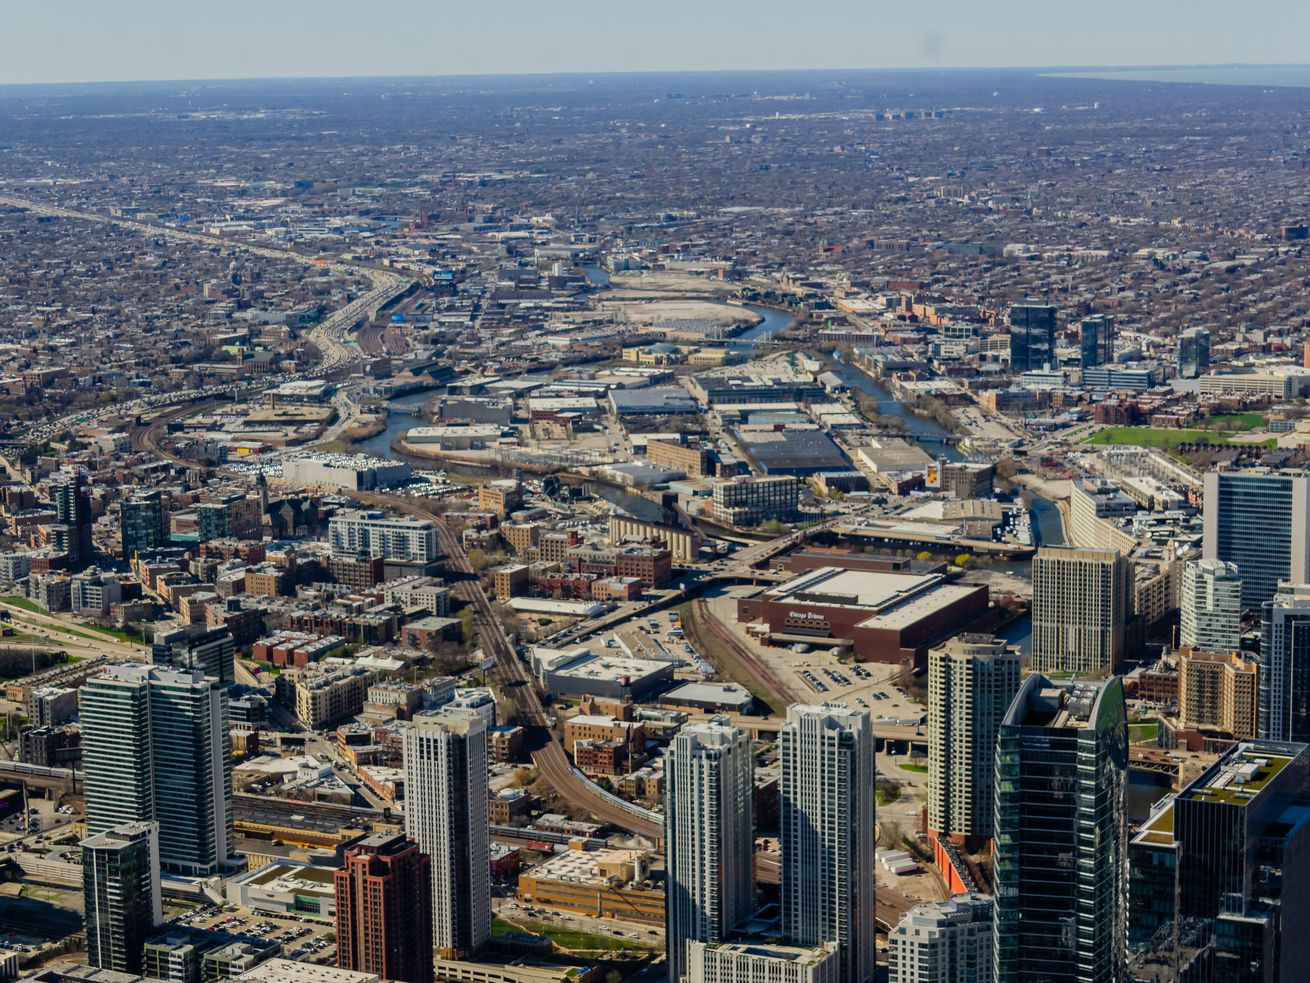 A bird's eye view of Chicago shows the confluence of the river, a few towers on the west end of the Loop, and smaller buildings of neighborhoods.